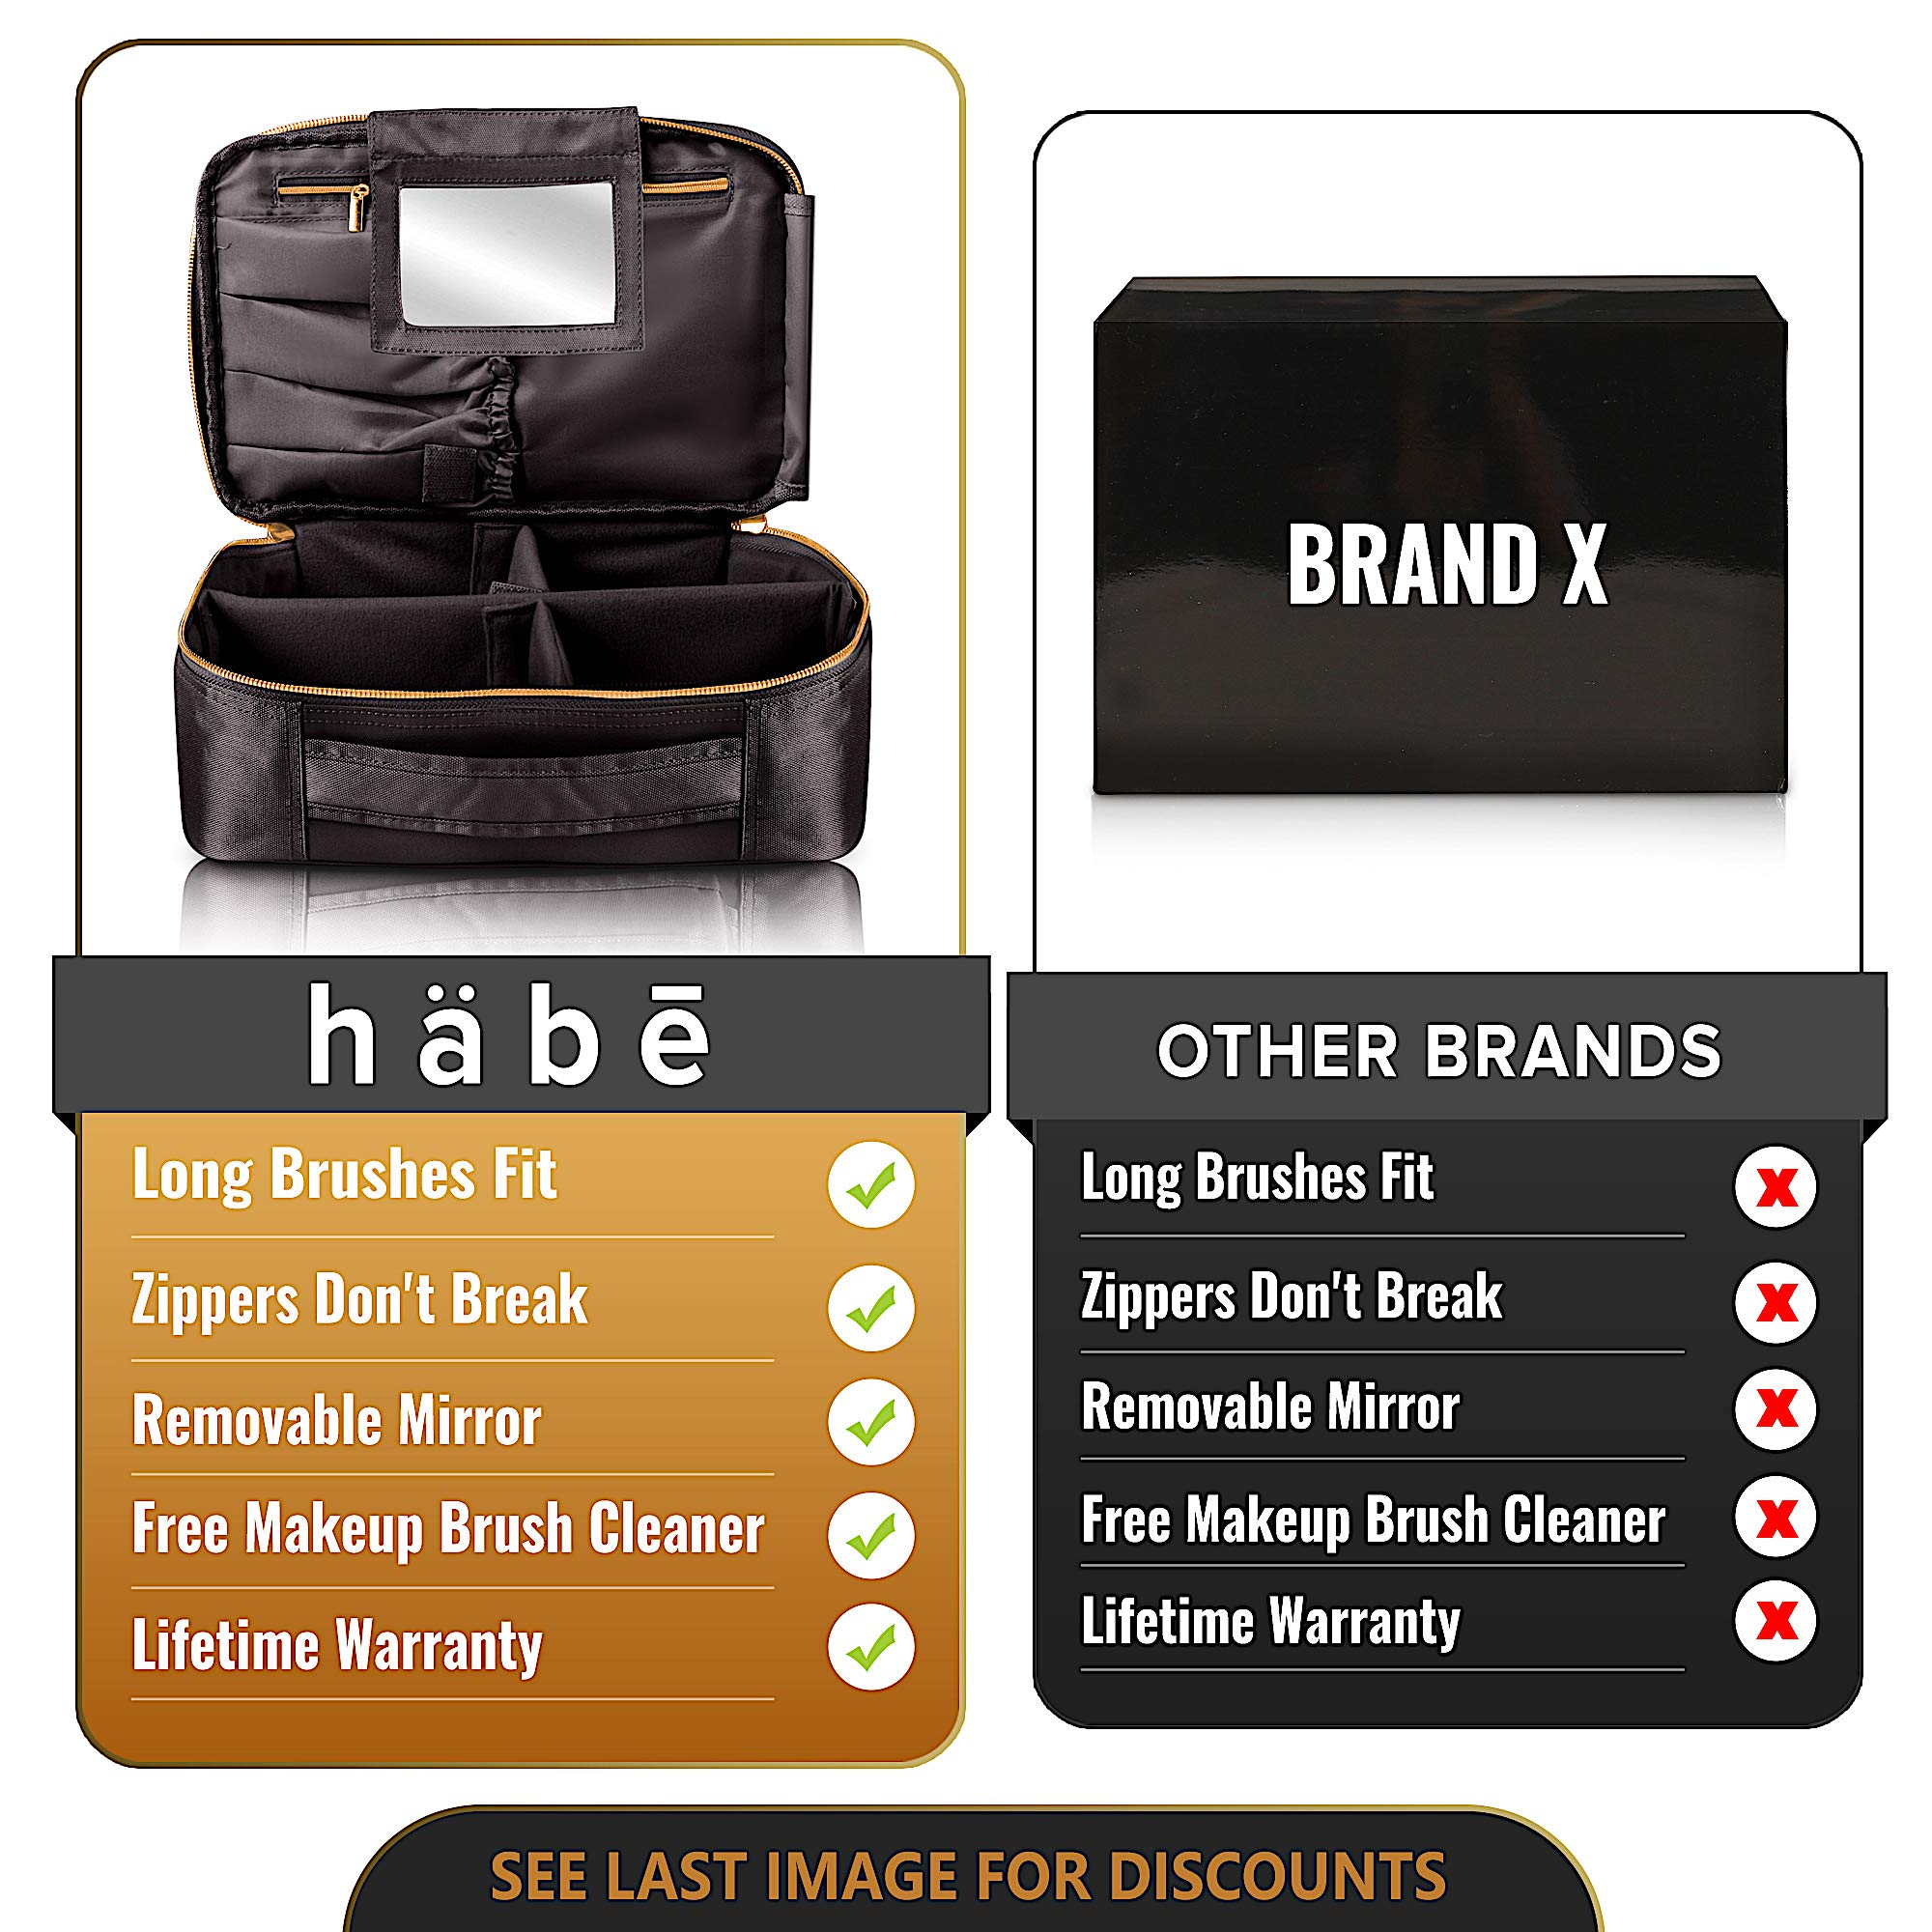 habe Travel Makeup Bag with Mirror - Organize Your Makeup! Make Up Bag Organizer Train Case for Women - Storage Capacity of 3 Cosmetic Bags/Make Up Bags/Make Up Cases (BONUS Make-Up Brush Cleaner) by häbe (Image #7)